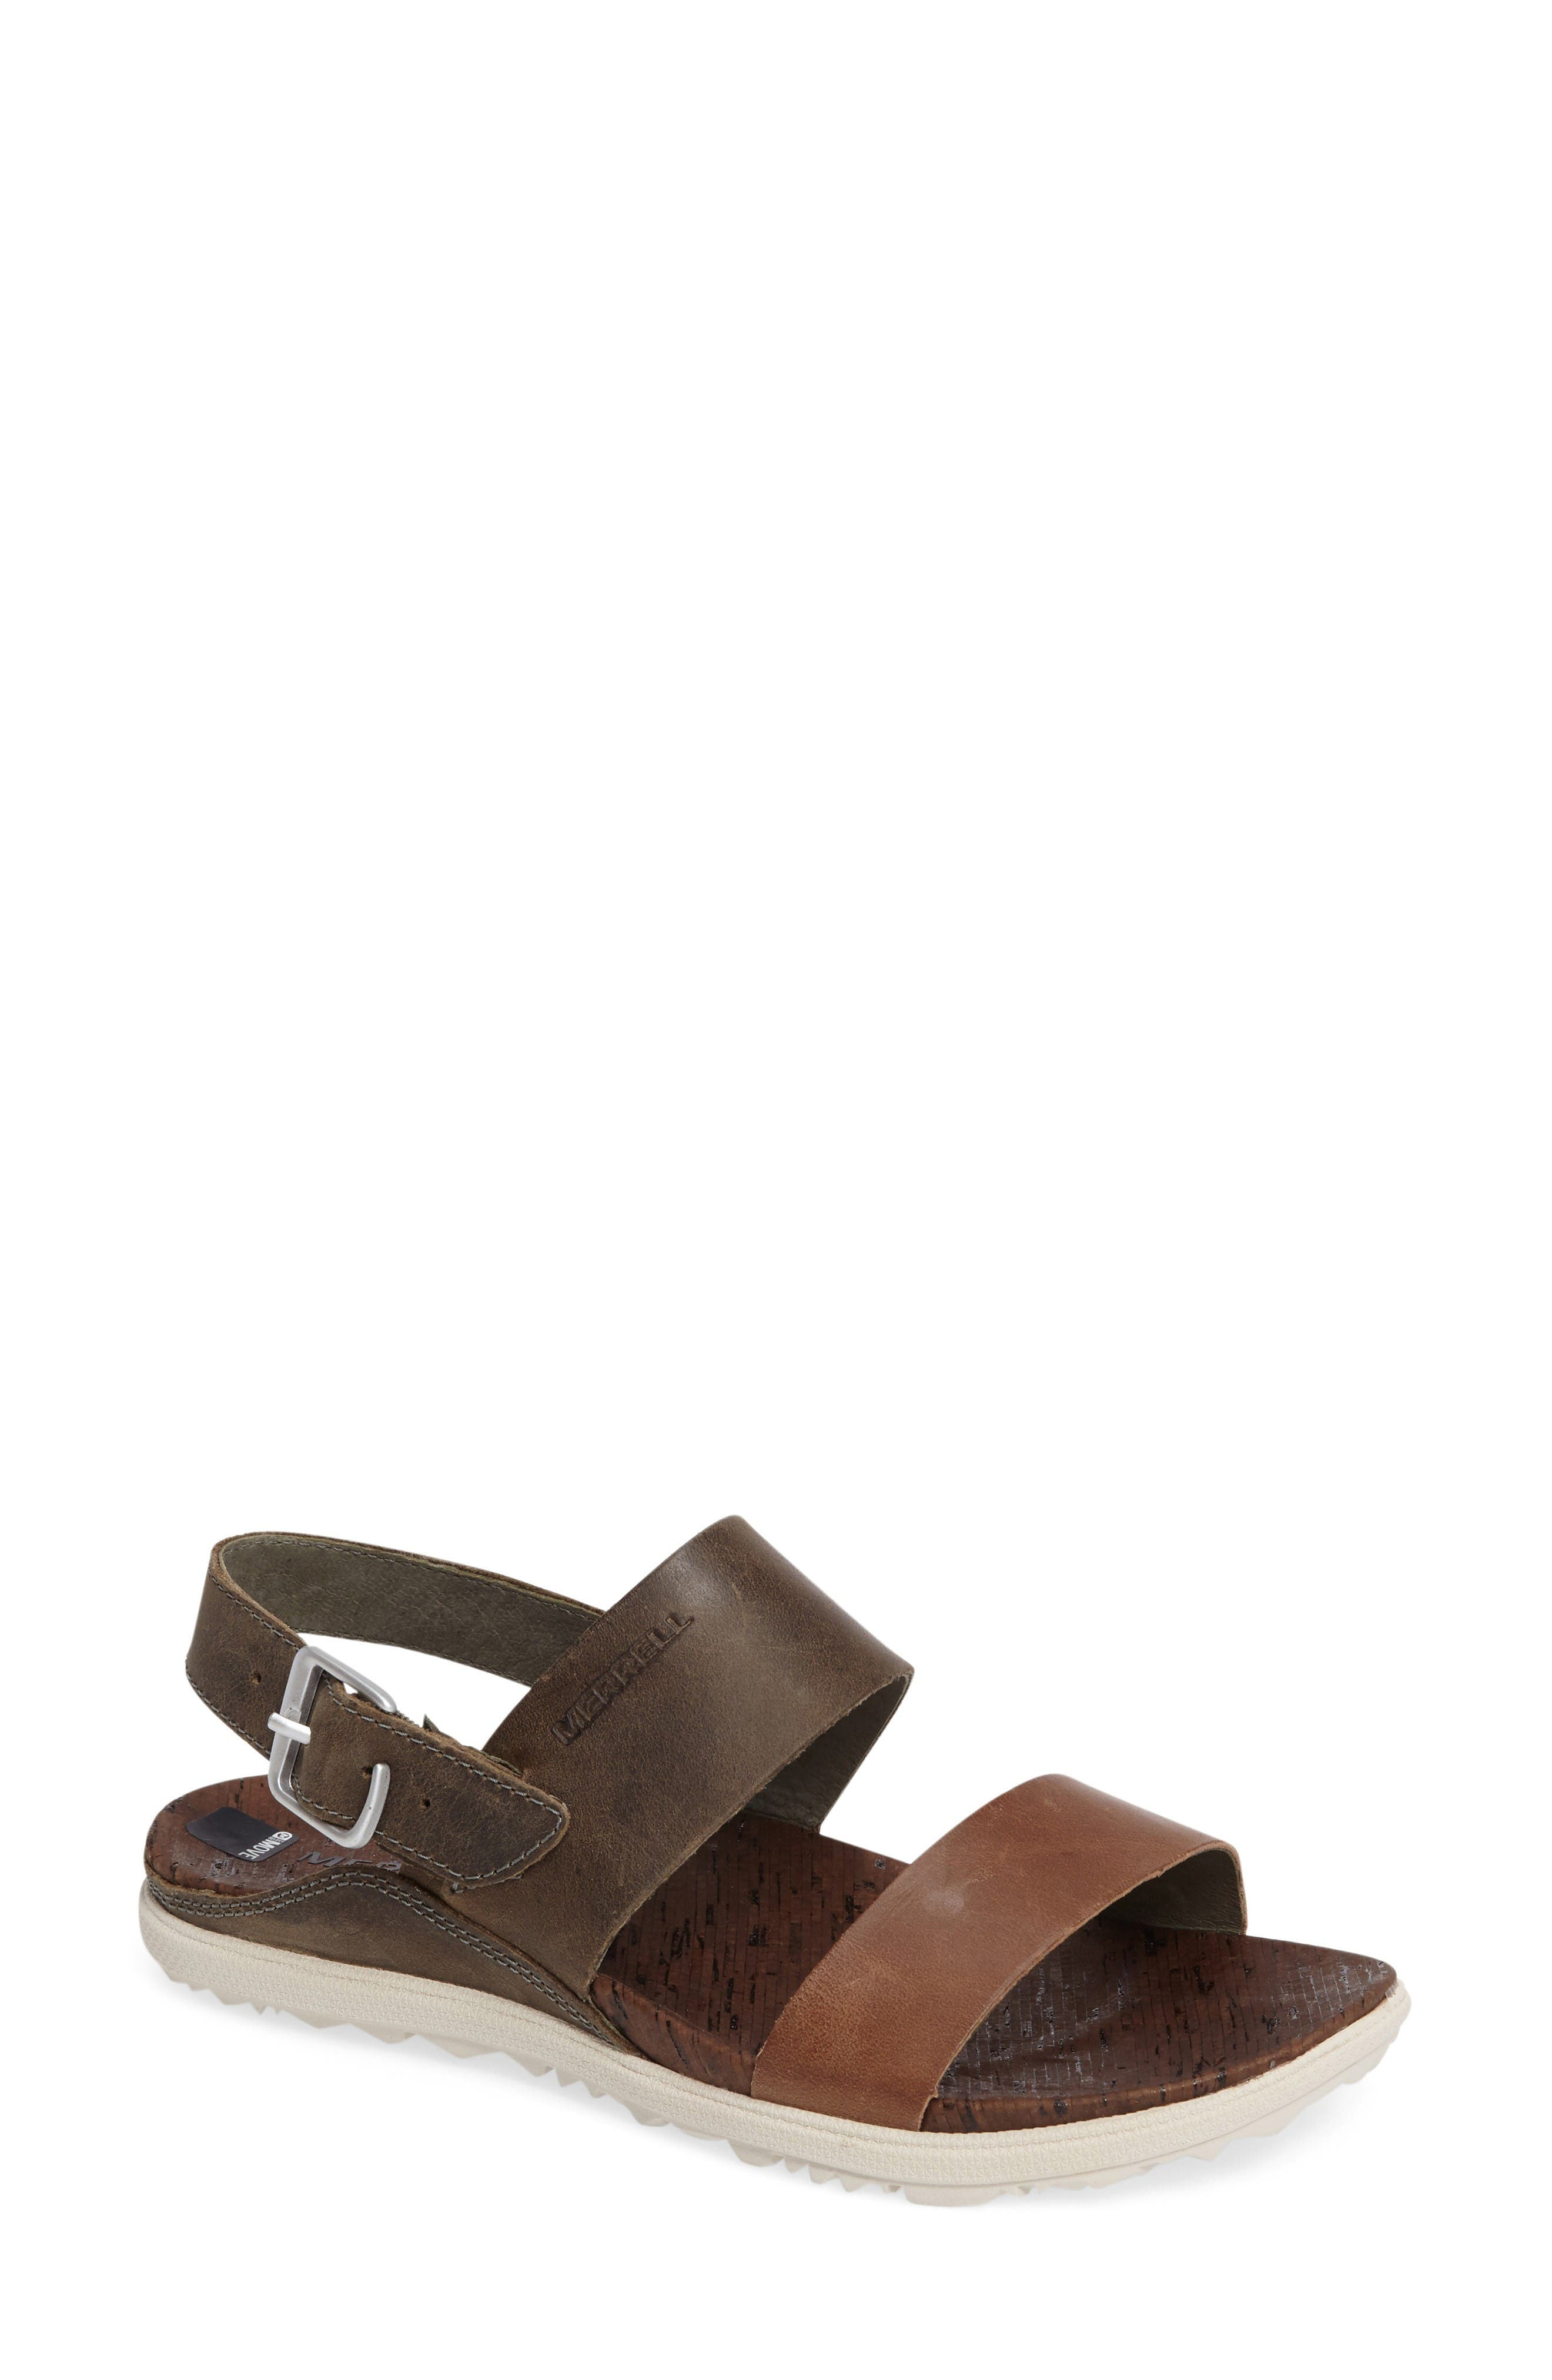 'Around Town' Slingback Sandal,                         Main,                         color, Vertiver Leather